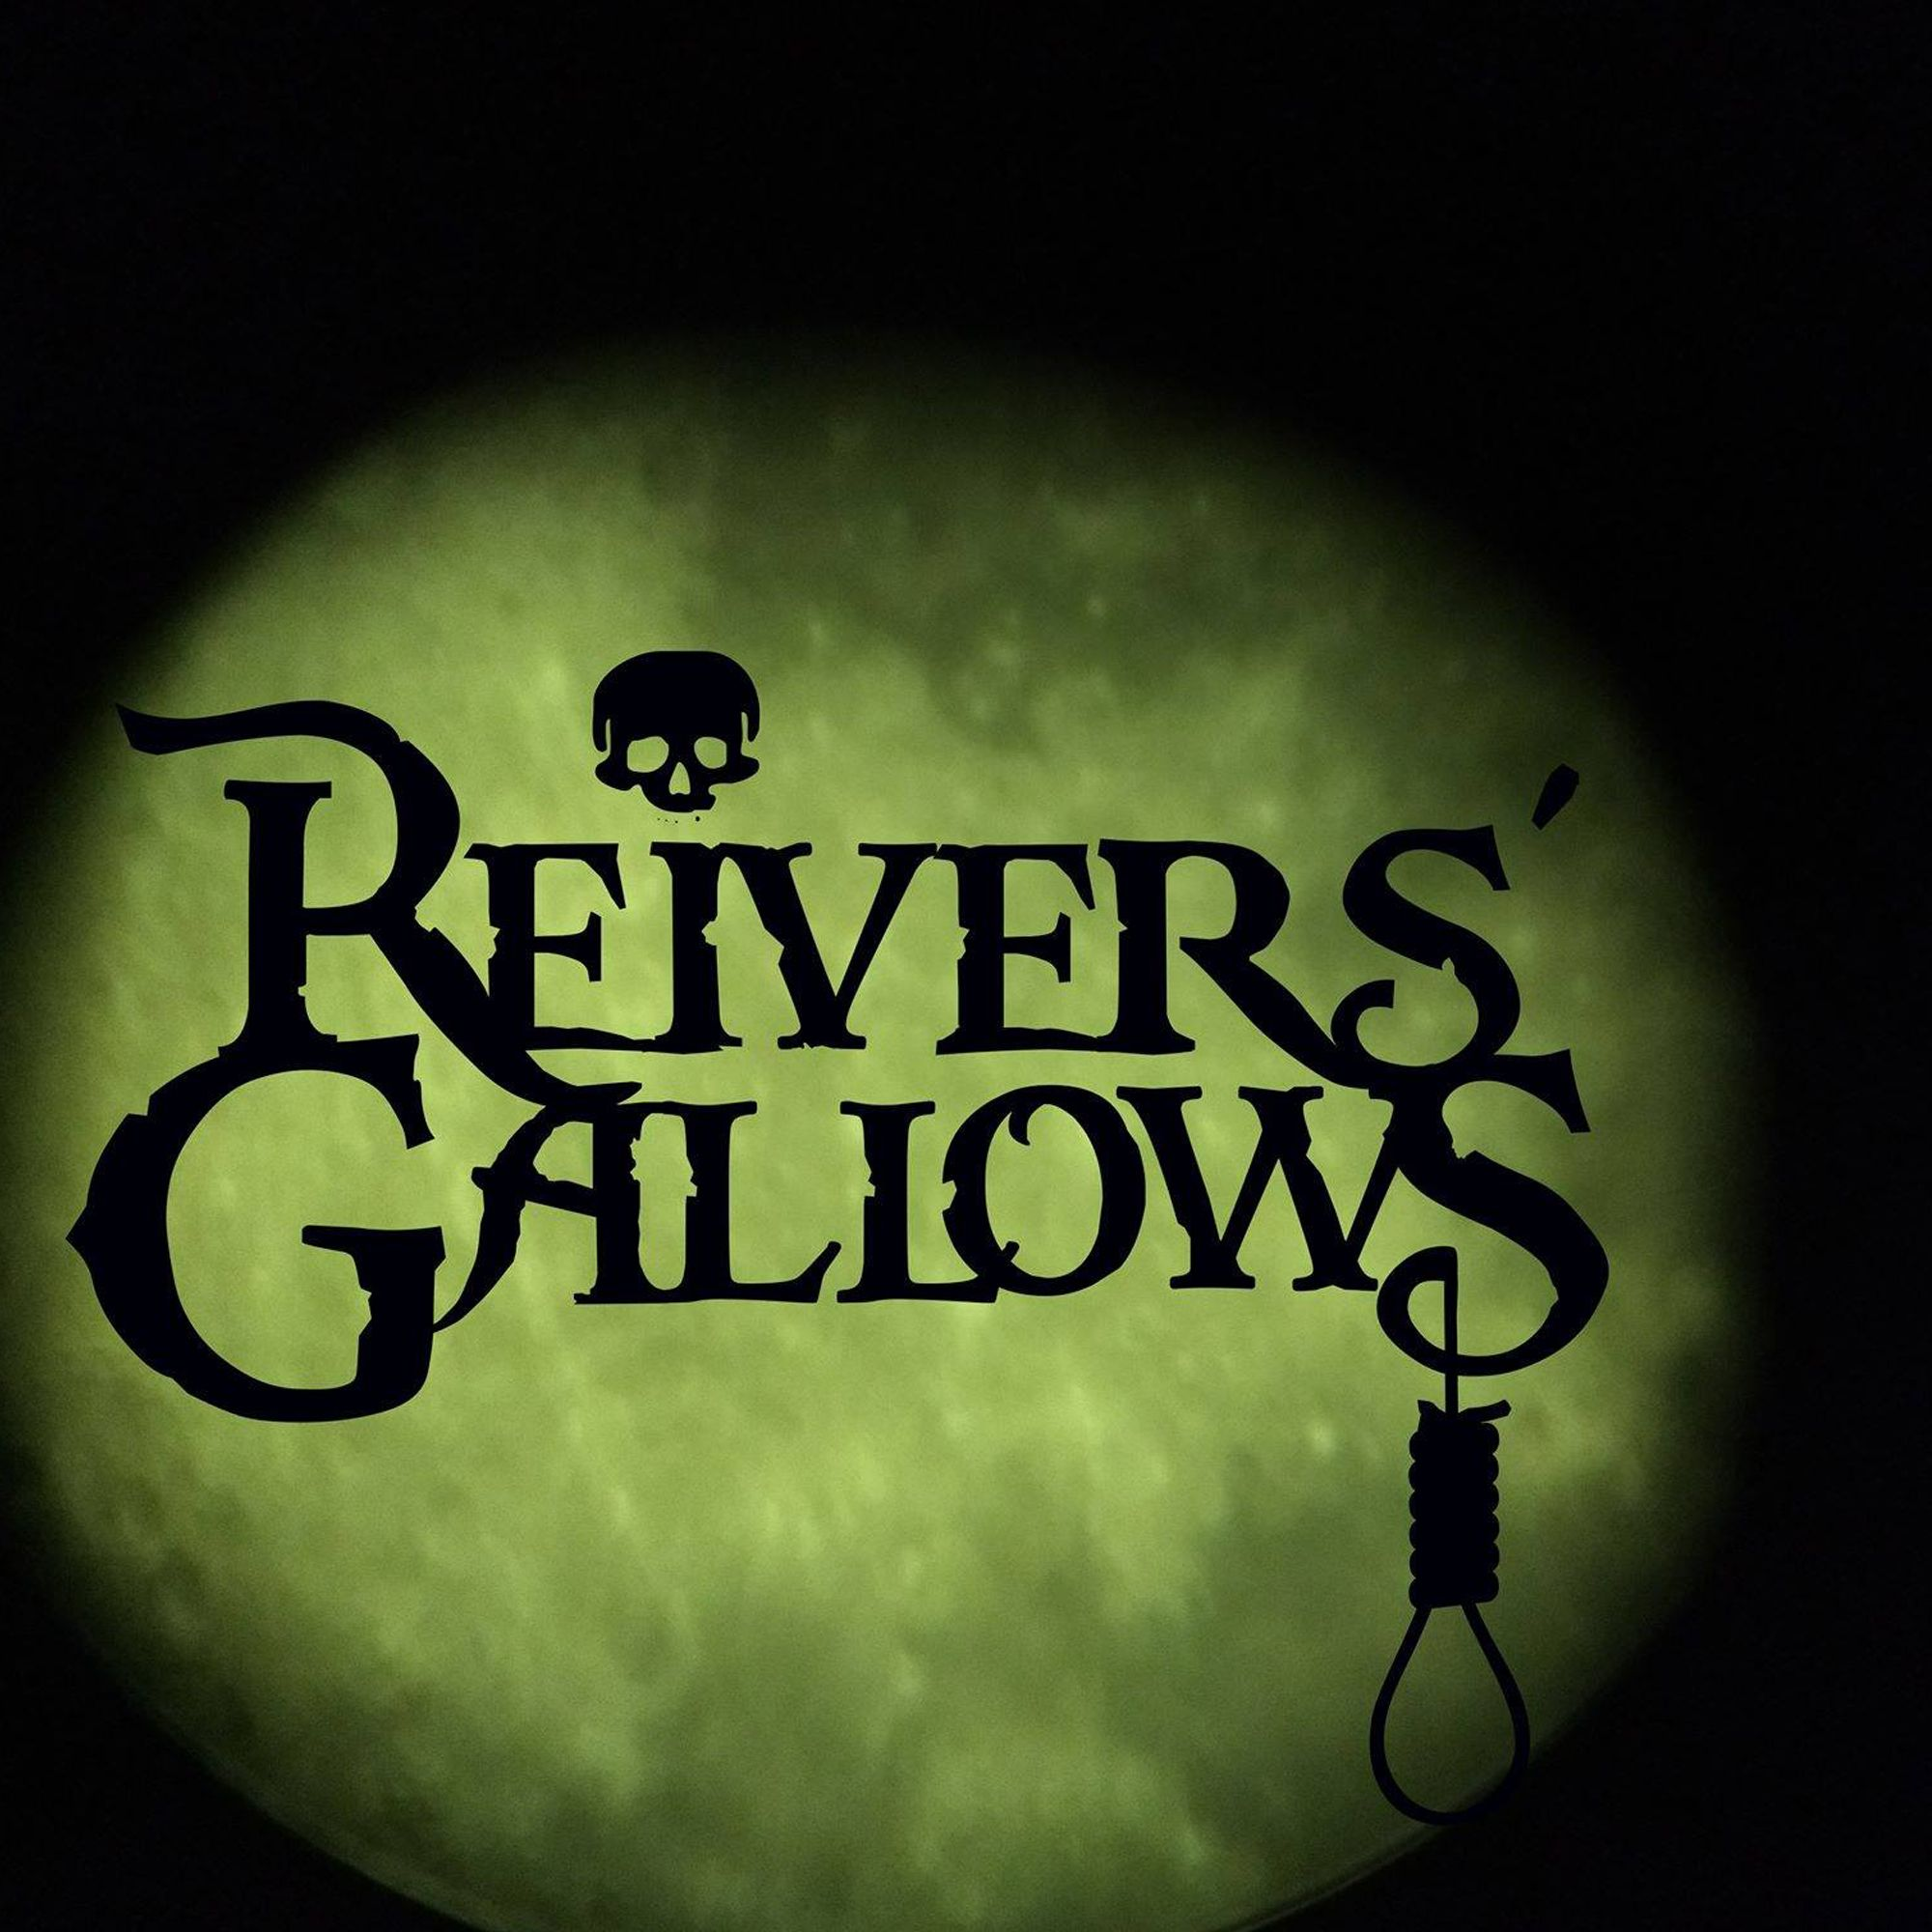 Reivers Gallows